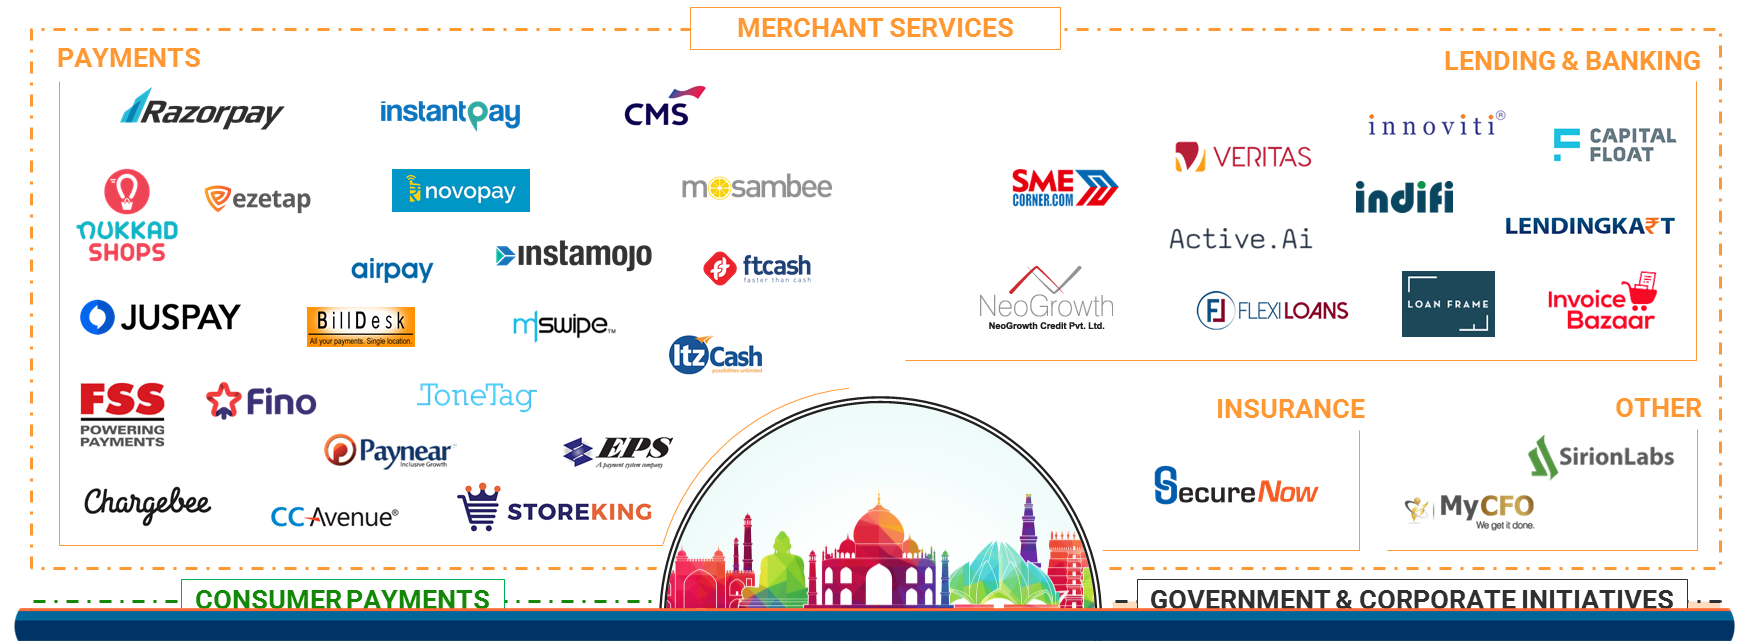 2017.03.29 India Fintech Market Map Featured v2